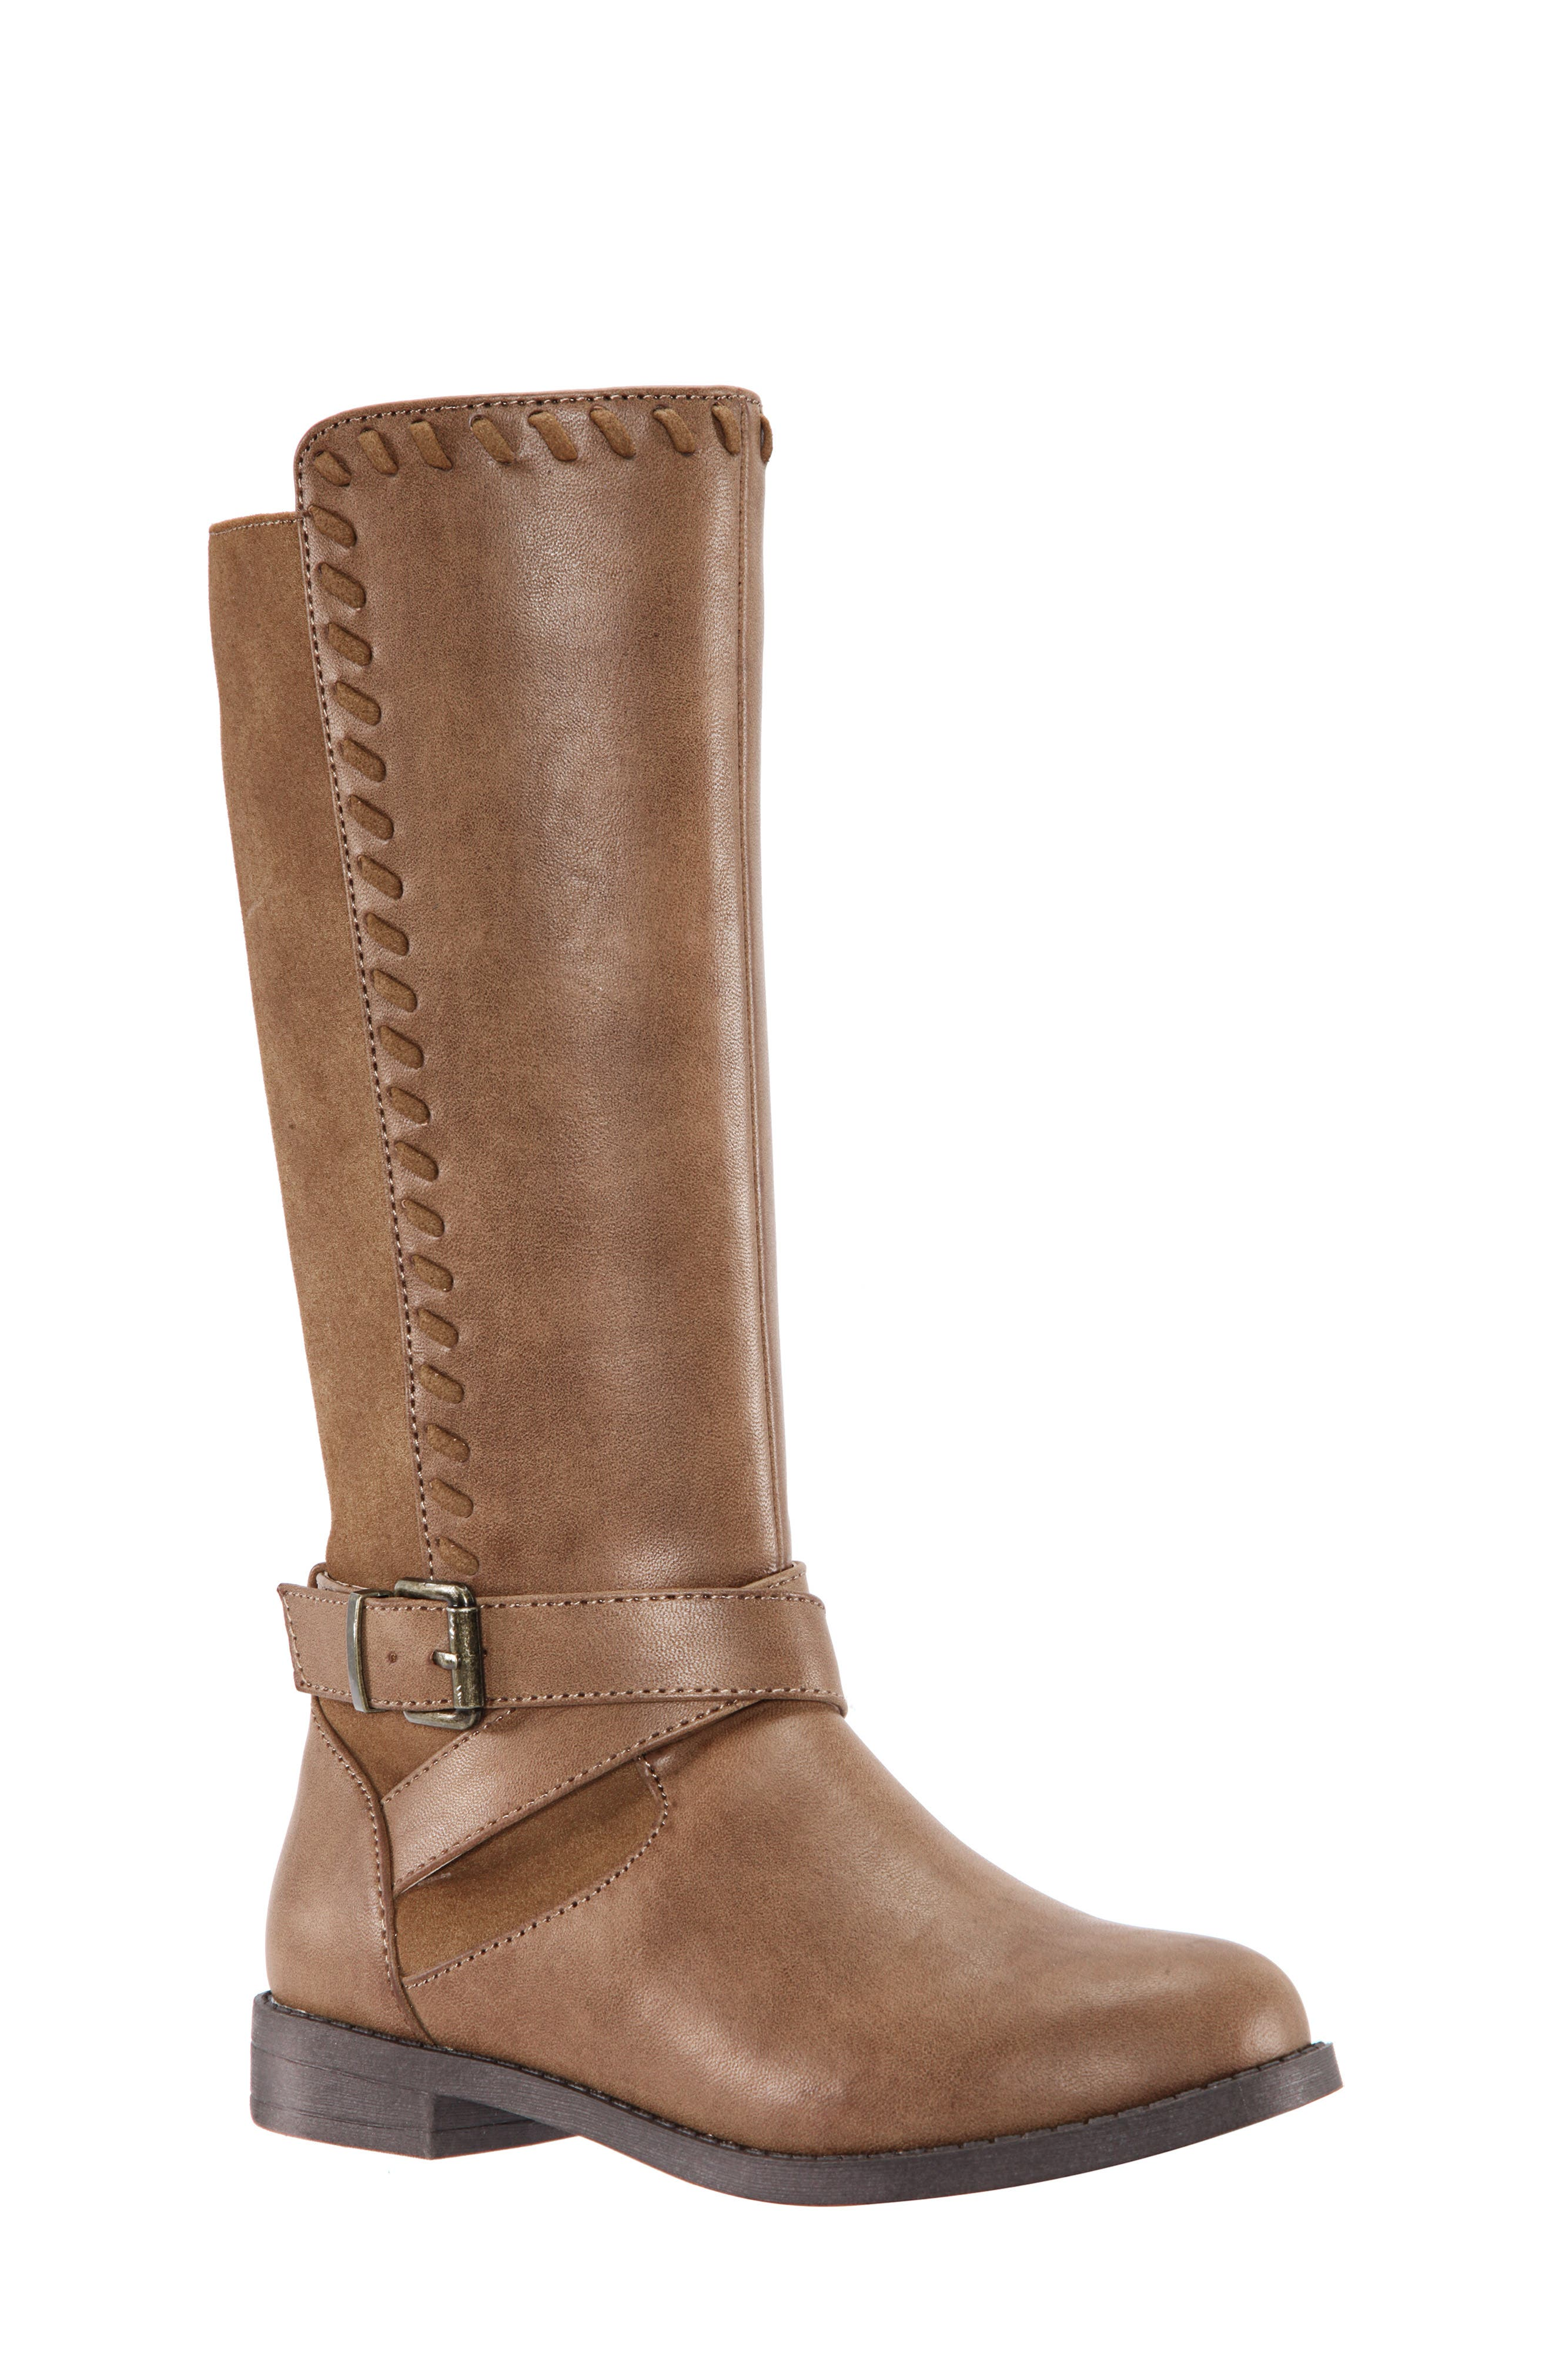 Jeanie Riding Boot,                             Main thumbnail 1, color,                             SADDLE BURNISHED